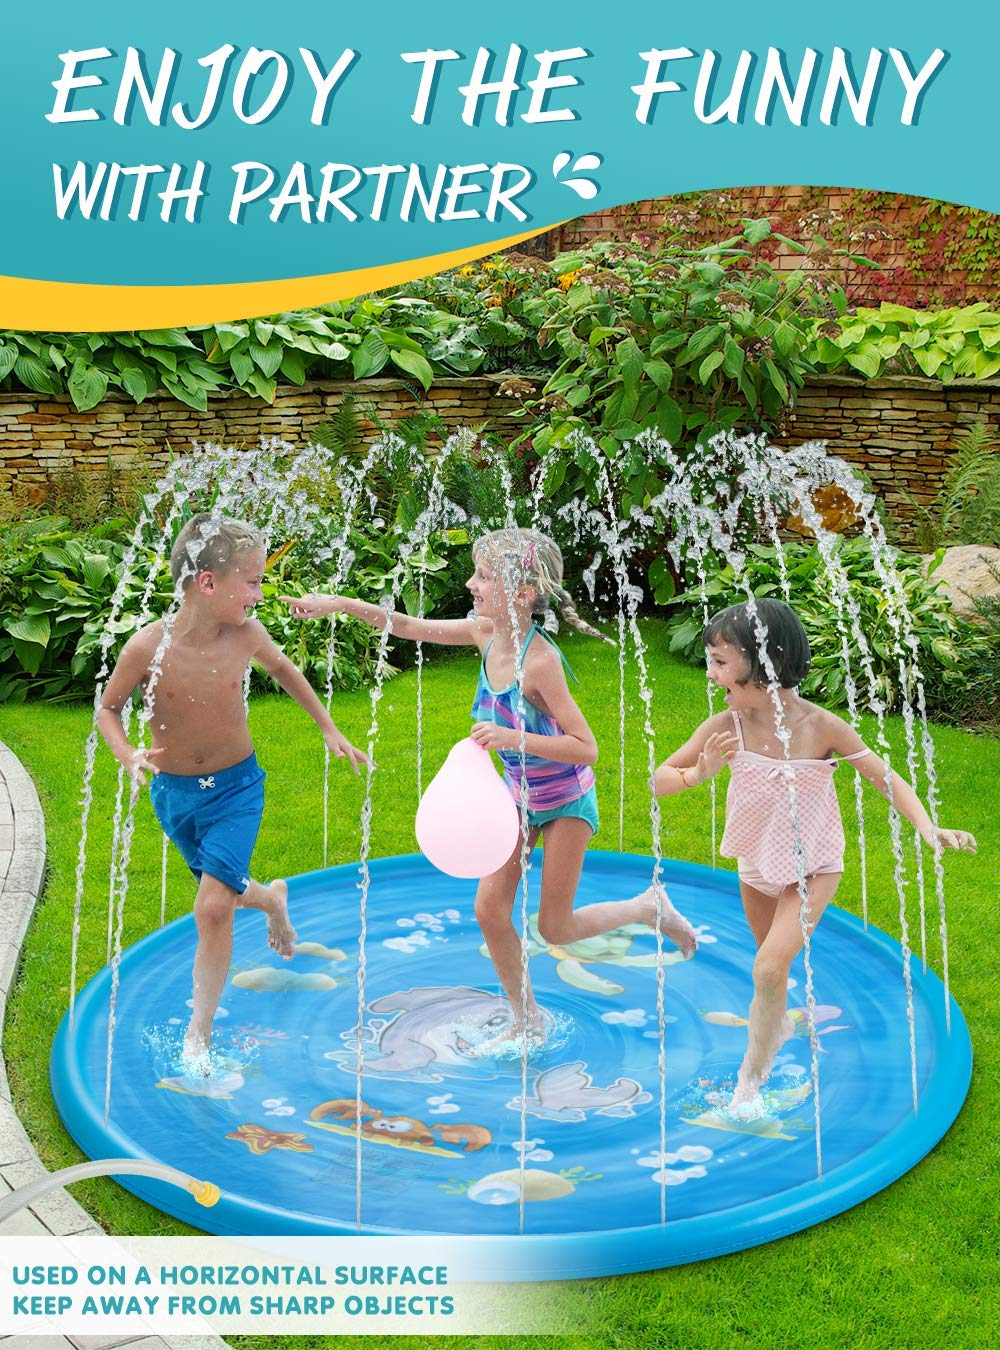 AiRoyal Water Sprinkler Pad for Kids Upgraded 68 Summer Outdoor Water Toys Wading Pool Splash Play Mat for Toddlers Baby Outside Water Play Mat for 1-12 Years Old Children Boys Girls